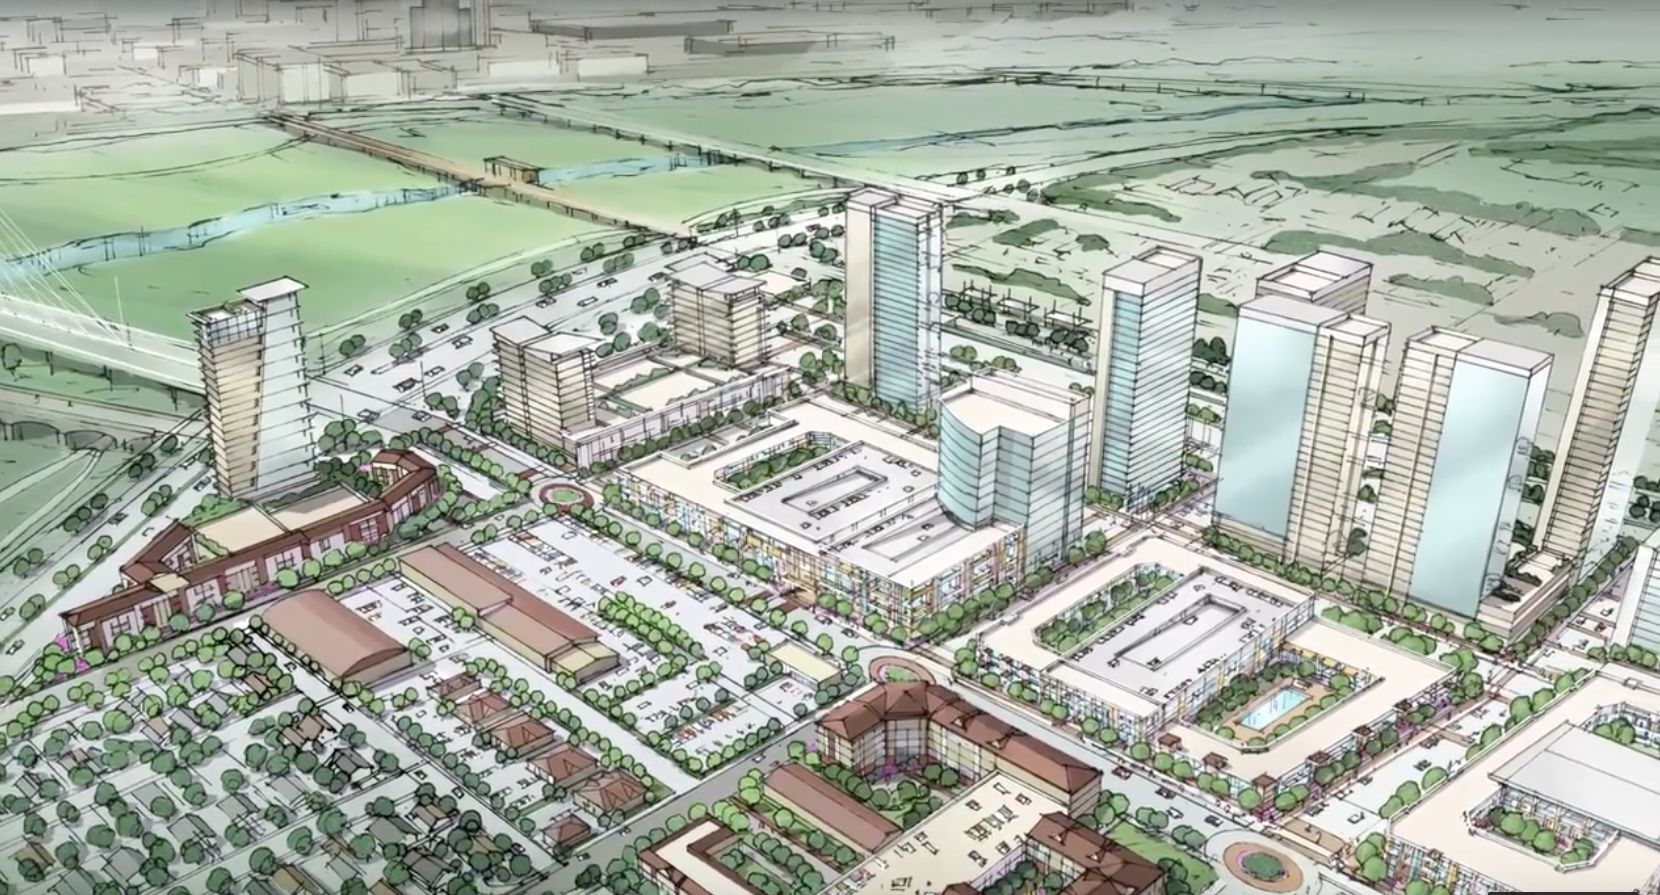 A masterplan for Trinity Groves shows towers along with apartments and retail.